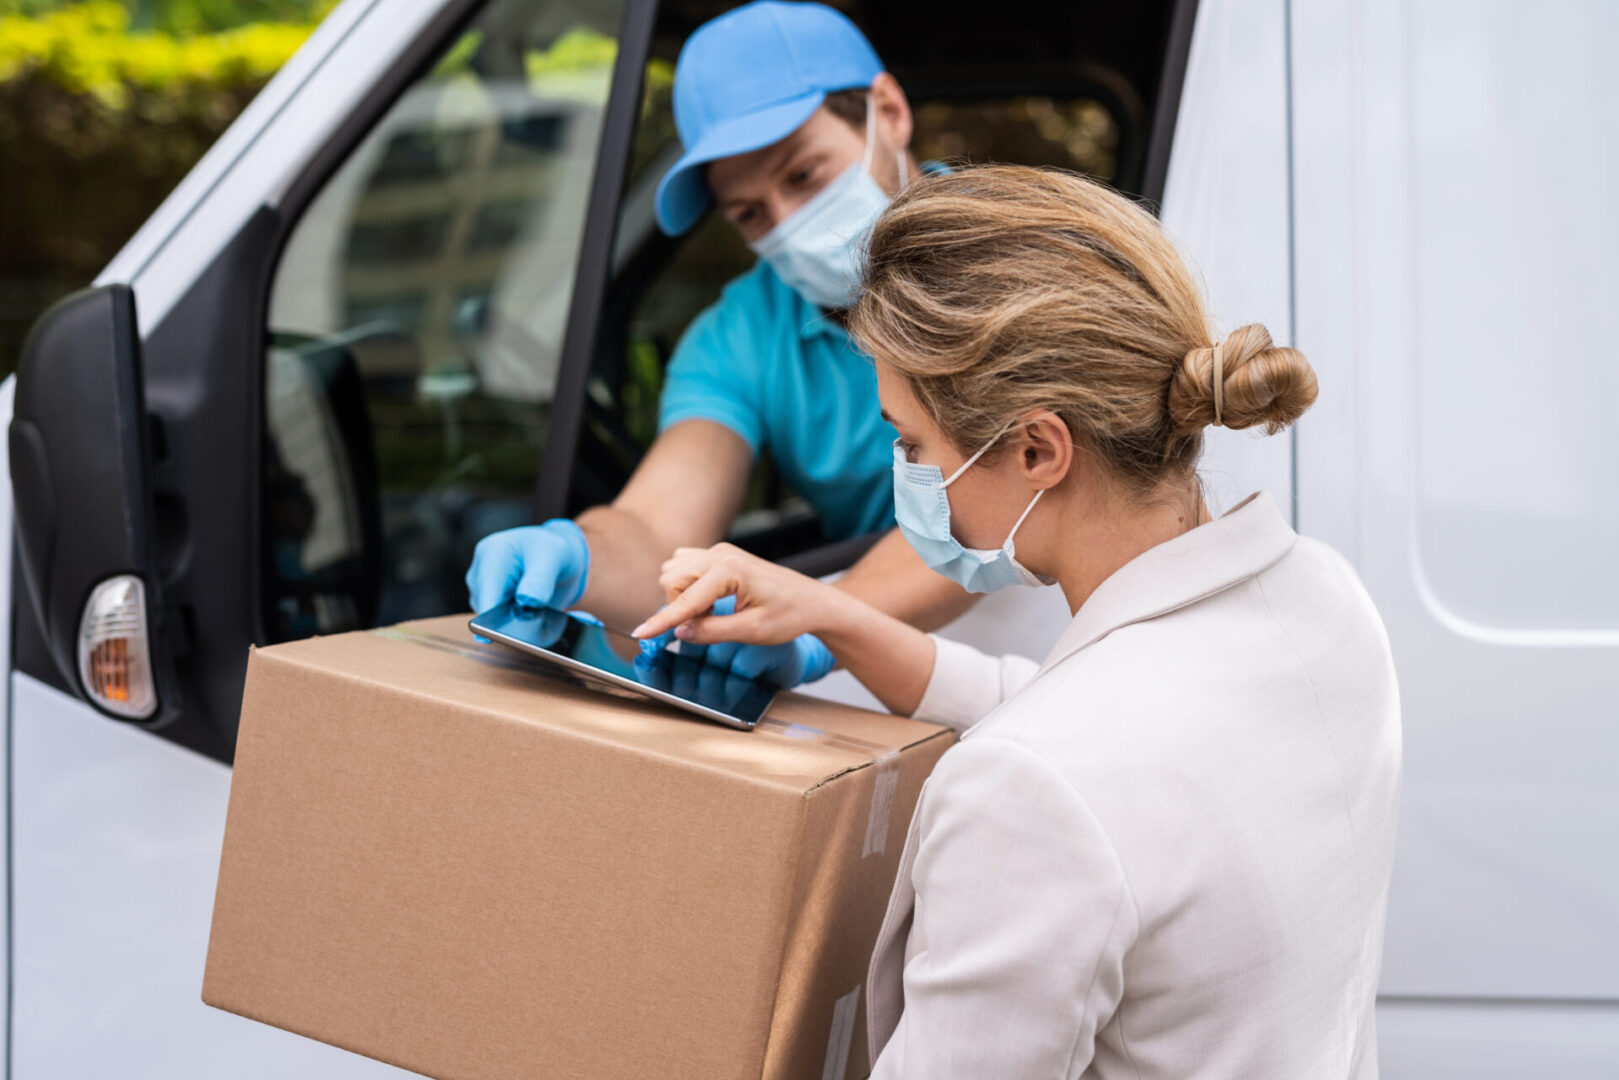 Prevention masks are new safety measures. Young woman receiving package from the delivery man on a van